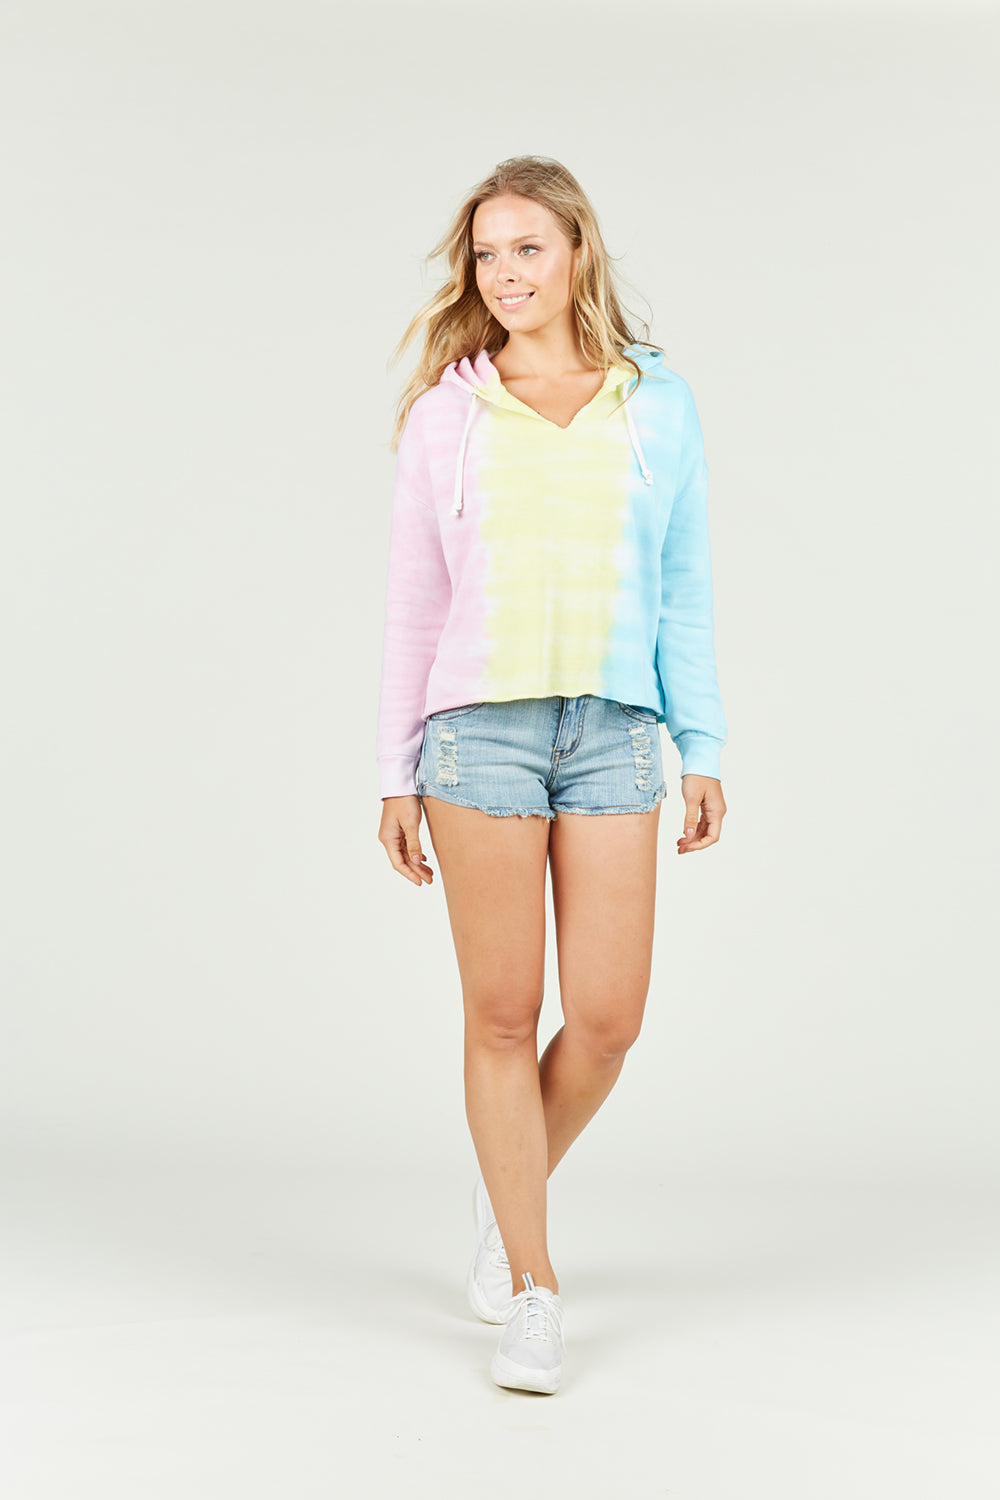 Ocean Drive x Surf Gypsy - Burnout Tri Color Tie Dye Hoody